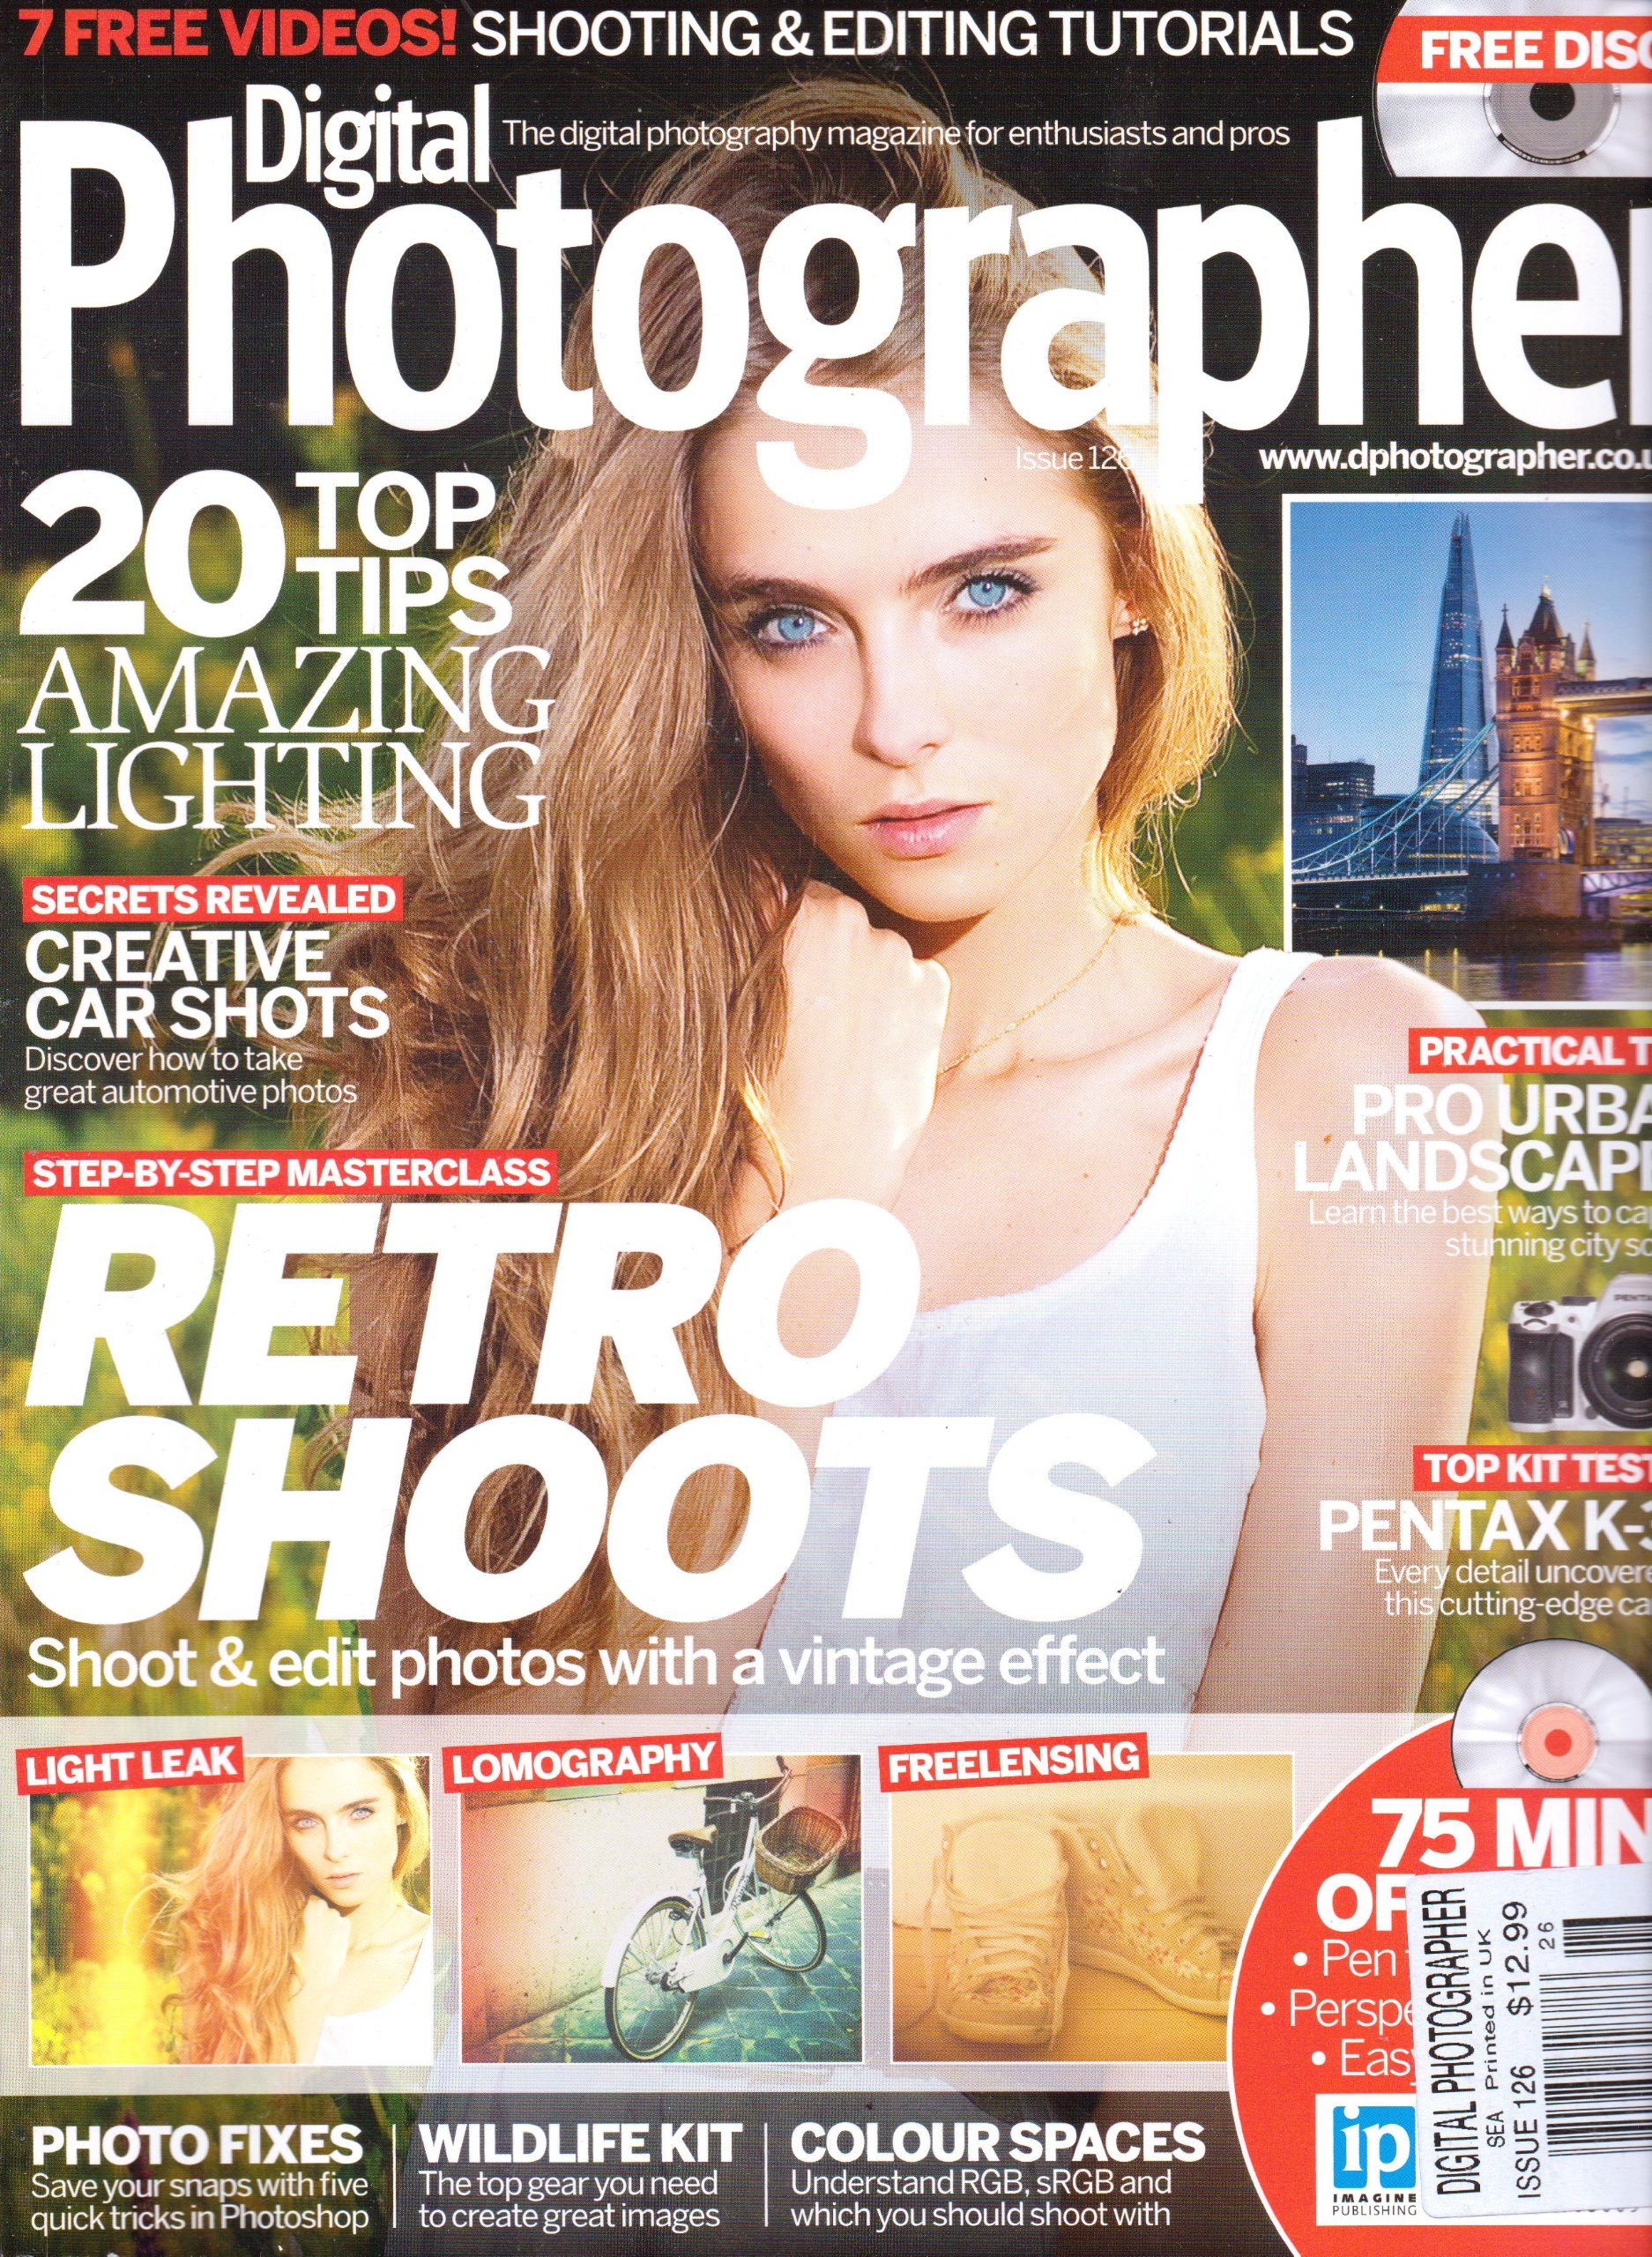 Digital PHOTOGRAPHER Magazine. FREE DISC! Shooting & Editing Tutorials. #126 2012. ebook